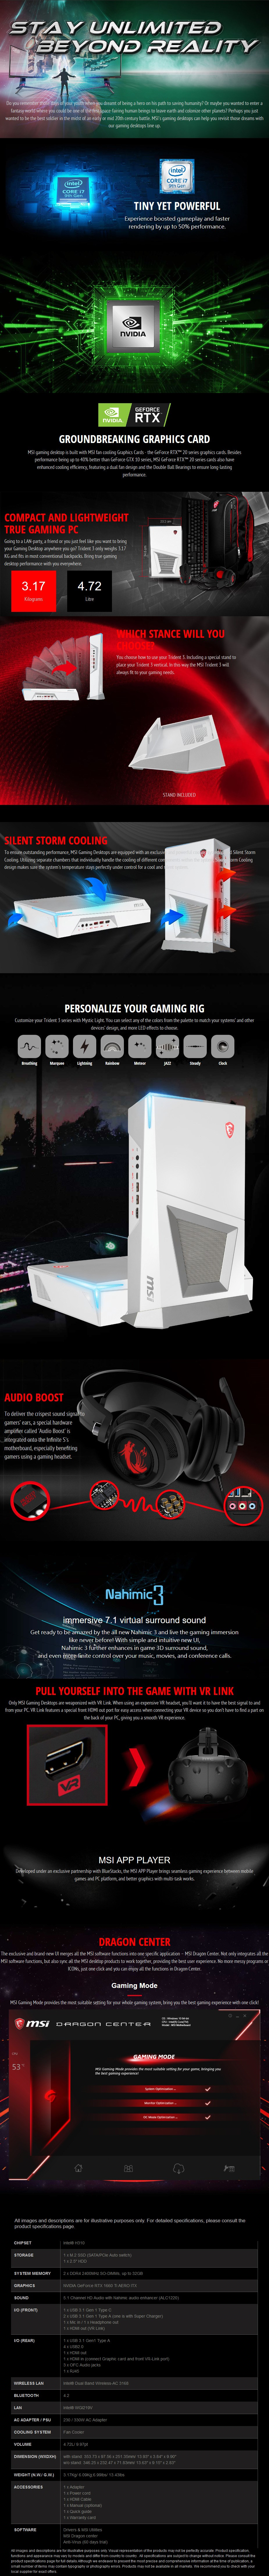 MSI Trident 3 Arctic Compact Gaming PC i7-9700F 16GB 1TB+512GB GTX1660Ti Win10H - Desktop  Overview 1